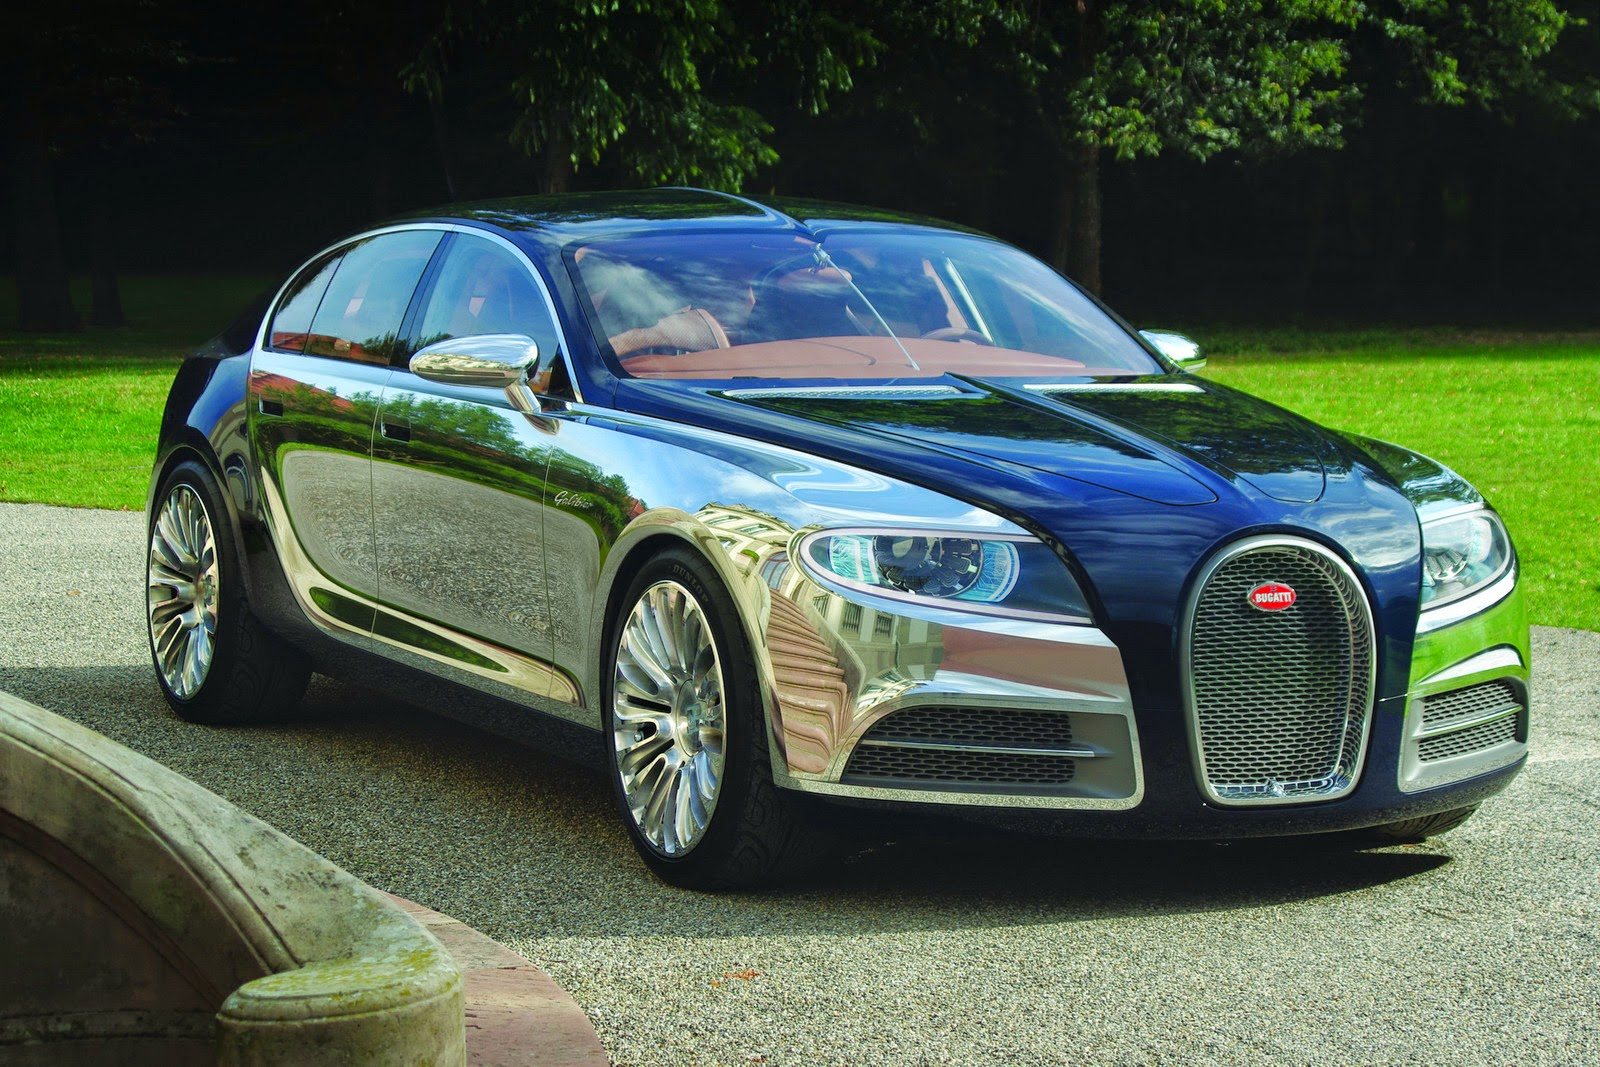 NEW 2015 Bugatti-16C-Galibier in motion